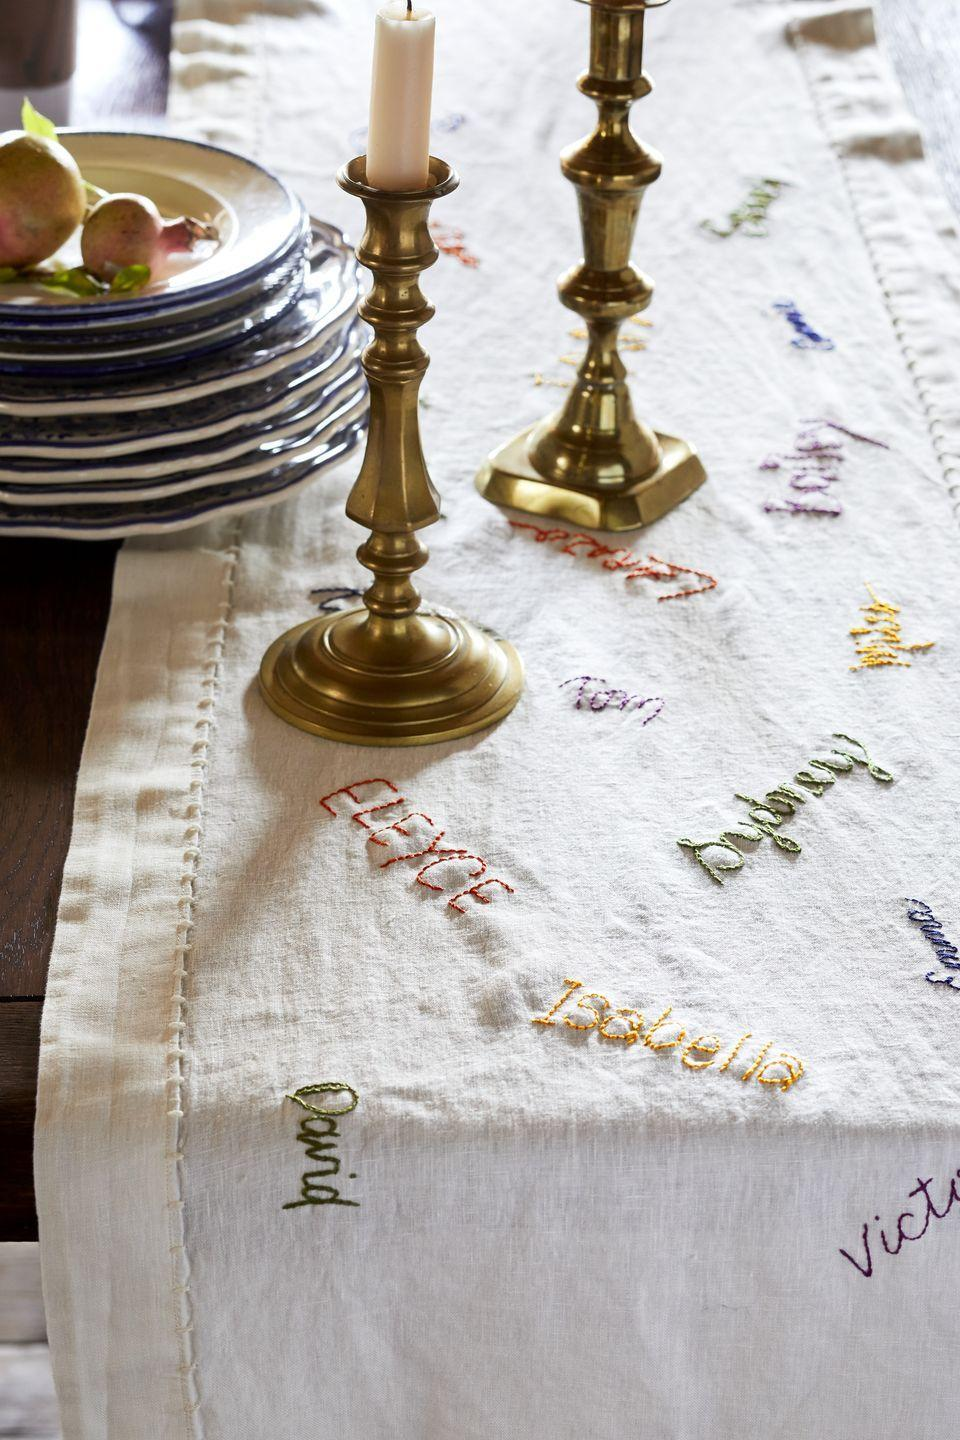 """<p>Want to make everyone in the family feel loved? Create a table runner with each guest's name stitched right on it. Use disappearing ink pens to write the names before embroidering them on for homespun decoration. What a fun alternative to <a href=""""https://www.countryliving.com/entertaining/g1538/diy-place-cards/"""" rel=""""nofollow noopener"""" target=""""_blank"""" data-ylk=""""slk:place cards"""" class=""""link rapid-noclick-resp"""">place cards</a>!</p><p><a class=""""link rapid-noclick-resp"""" href=""""https://www.amazon.com/Dritz-677-60-Disappearing-Marking-Purple/dp/B00175Z2QE/?tag=syn-yahoo-20&ascsubtag=%5Bartid%7C10050.g.1371%5Bsrc%7Cyahoo-us"""" rel=""""nofollow noopener"""" target=""""_blank"""" data-ylk=""""slk:SHOP DISAPPEARING INK PENS"""">SHOP DISAPPEARING INK PENS</a></p>"""